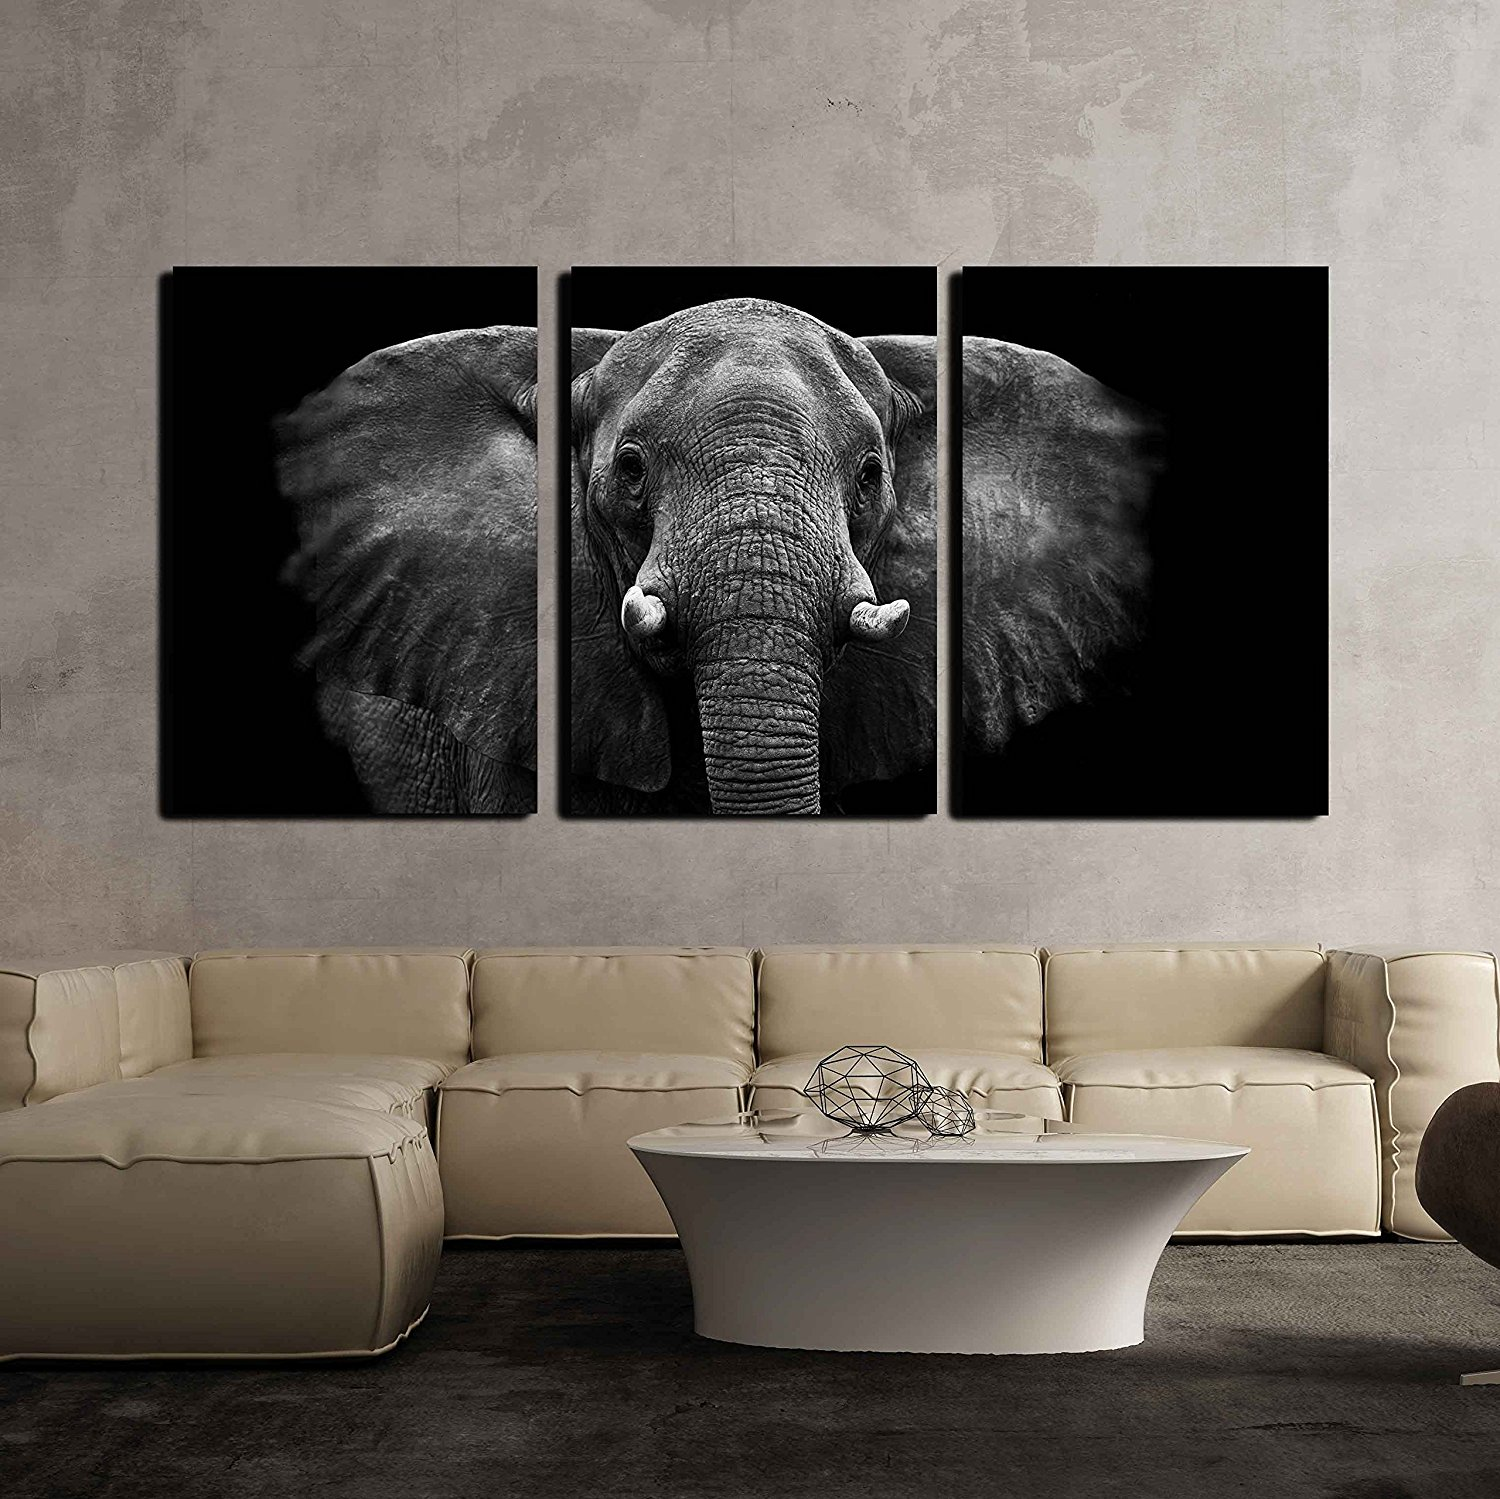 Elephant Modern Home Decor Canvas Wall Art Picture Print Drop shipping